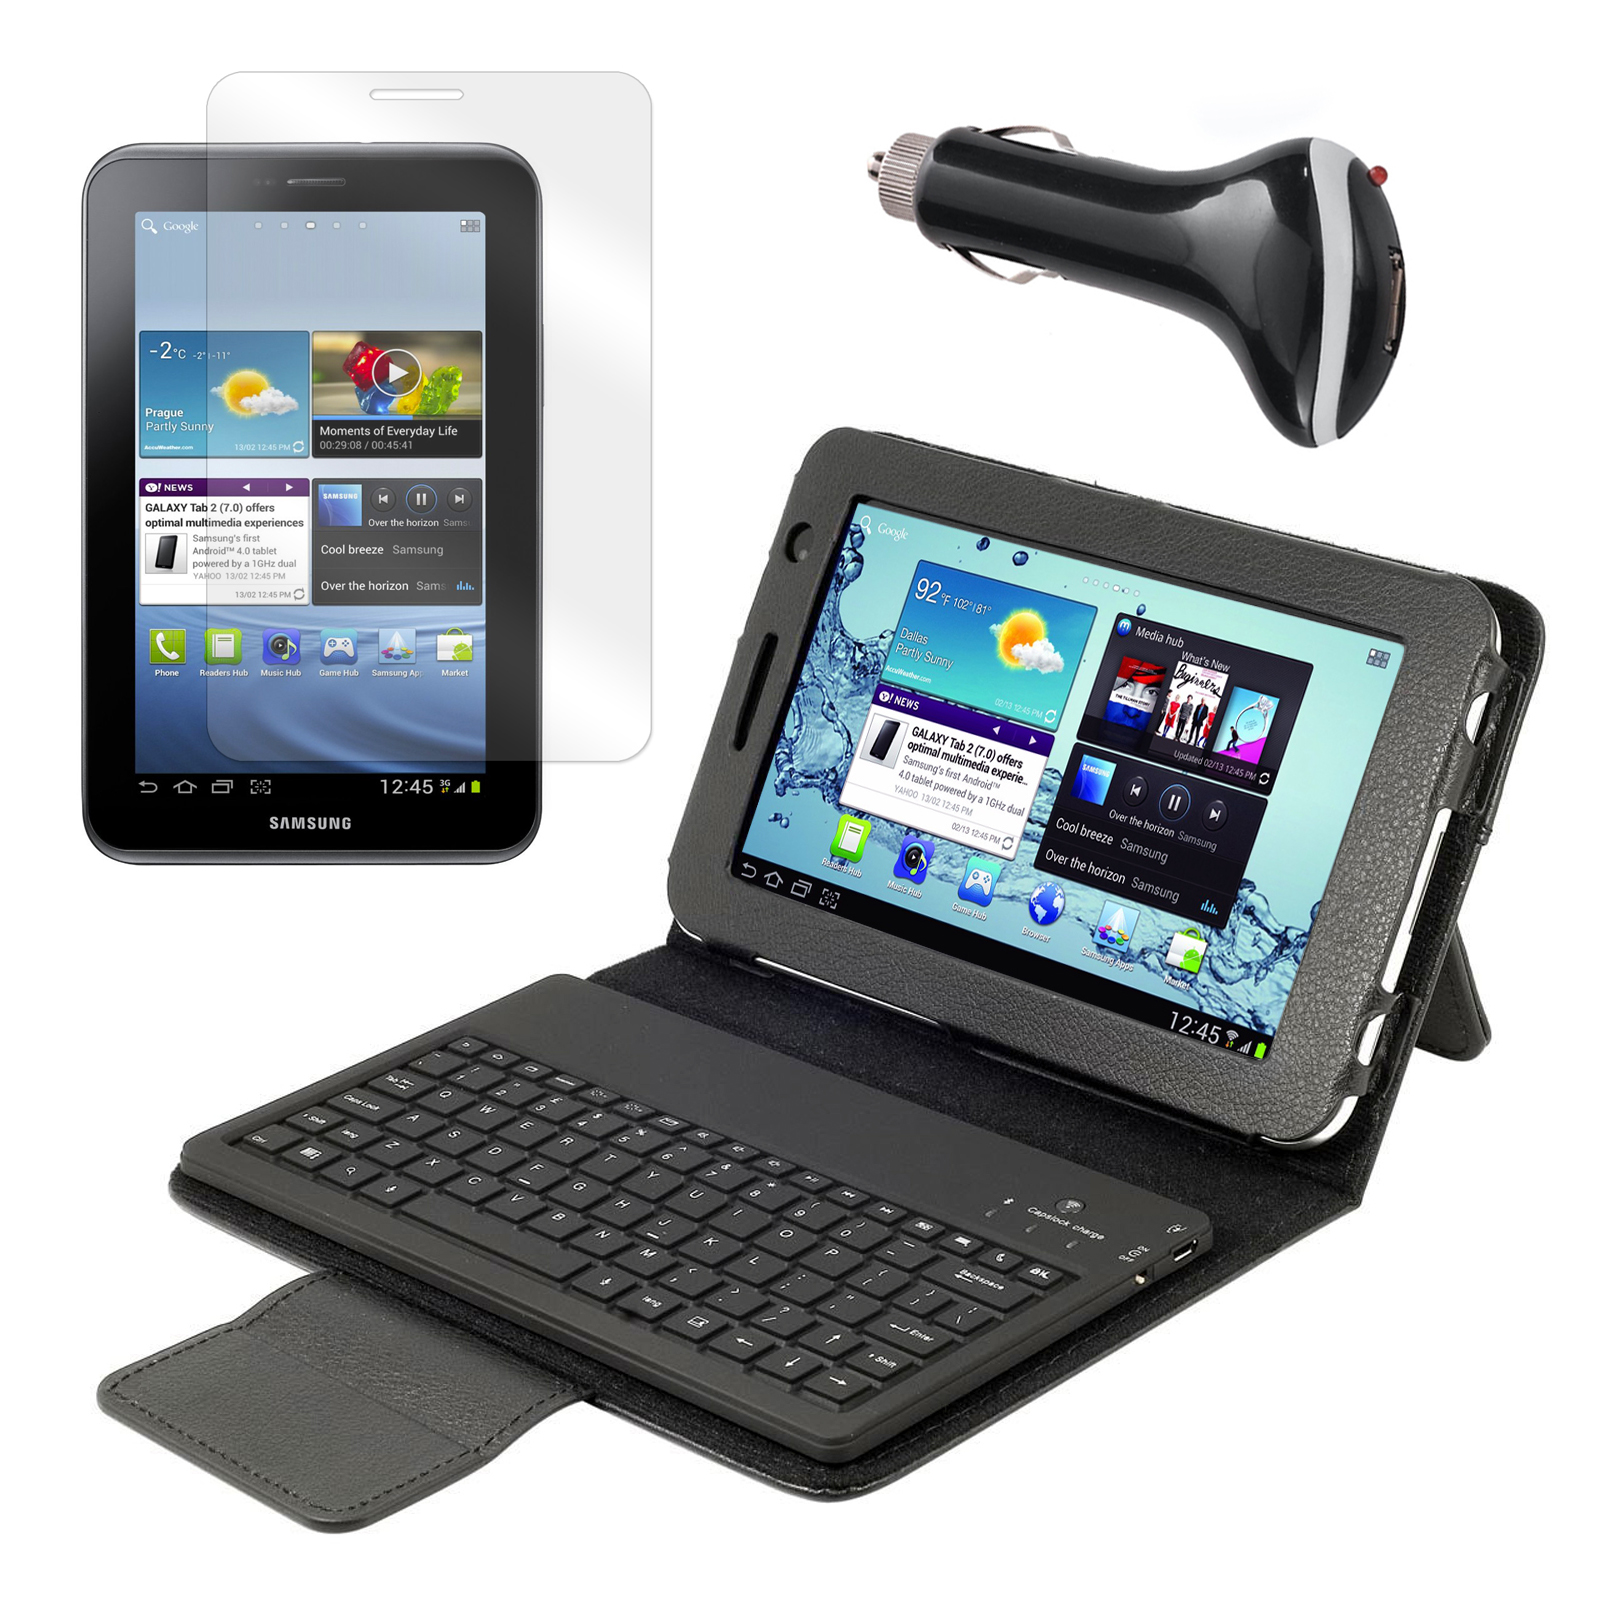 galaxy tab 2 7.0 case